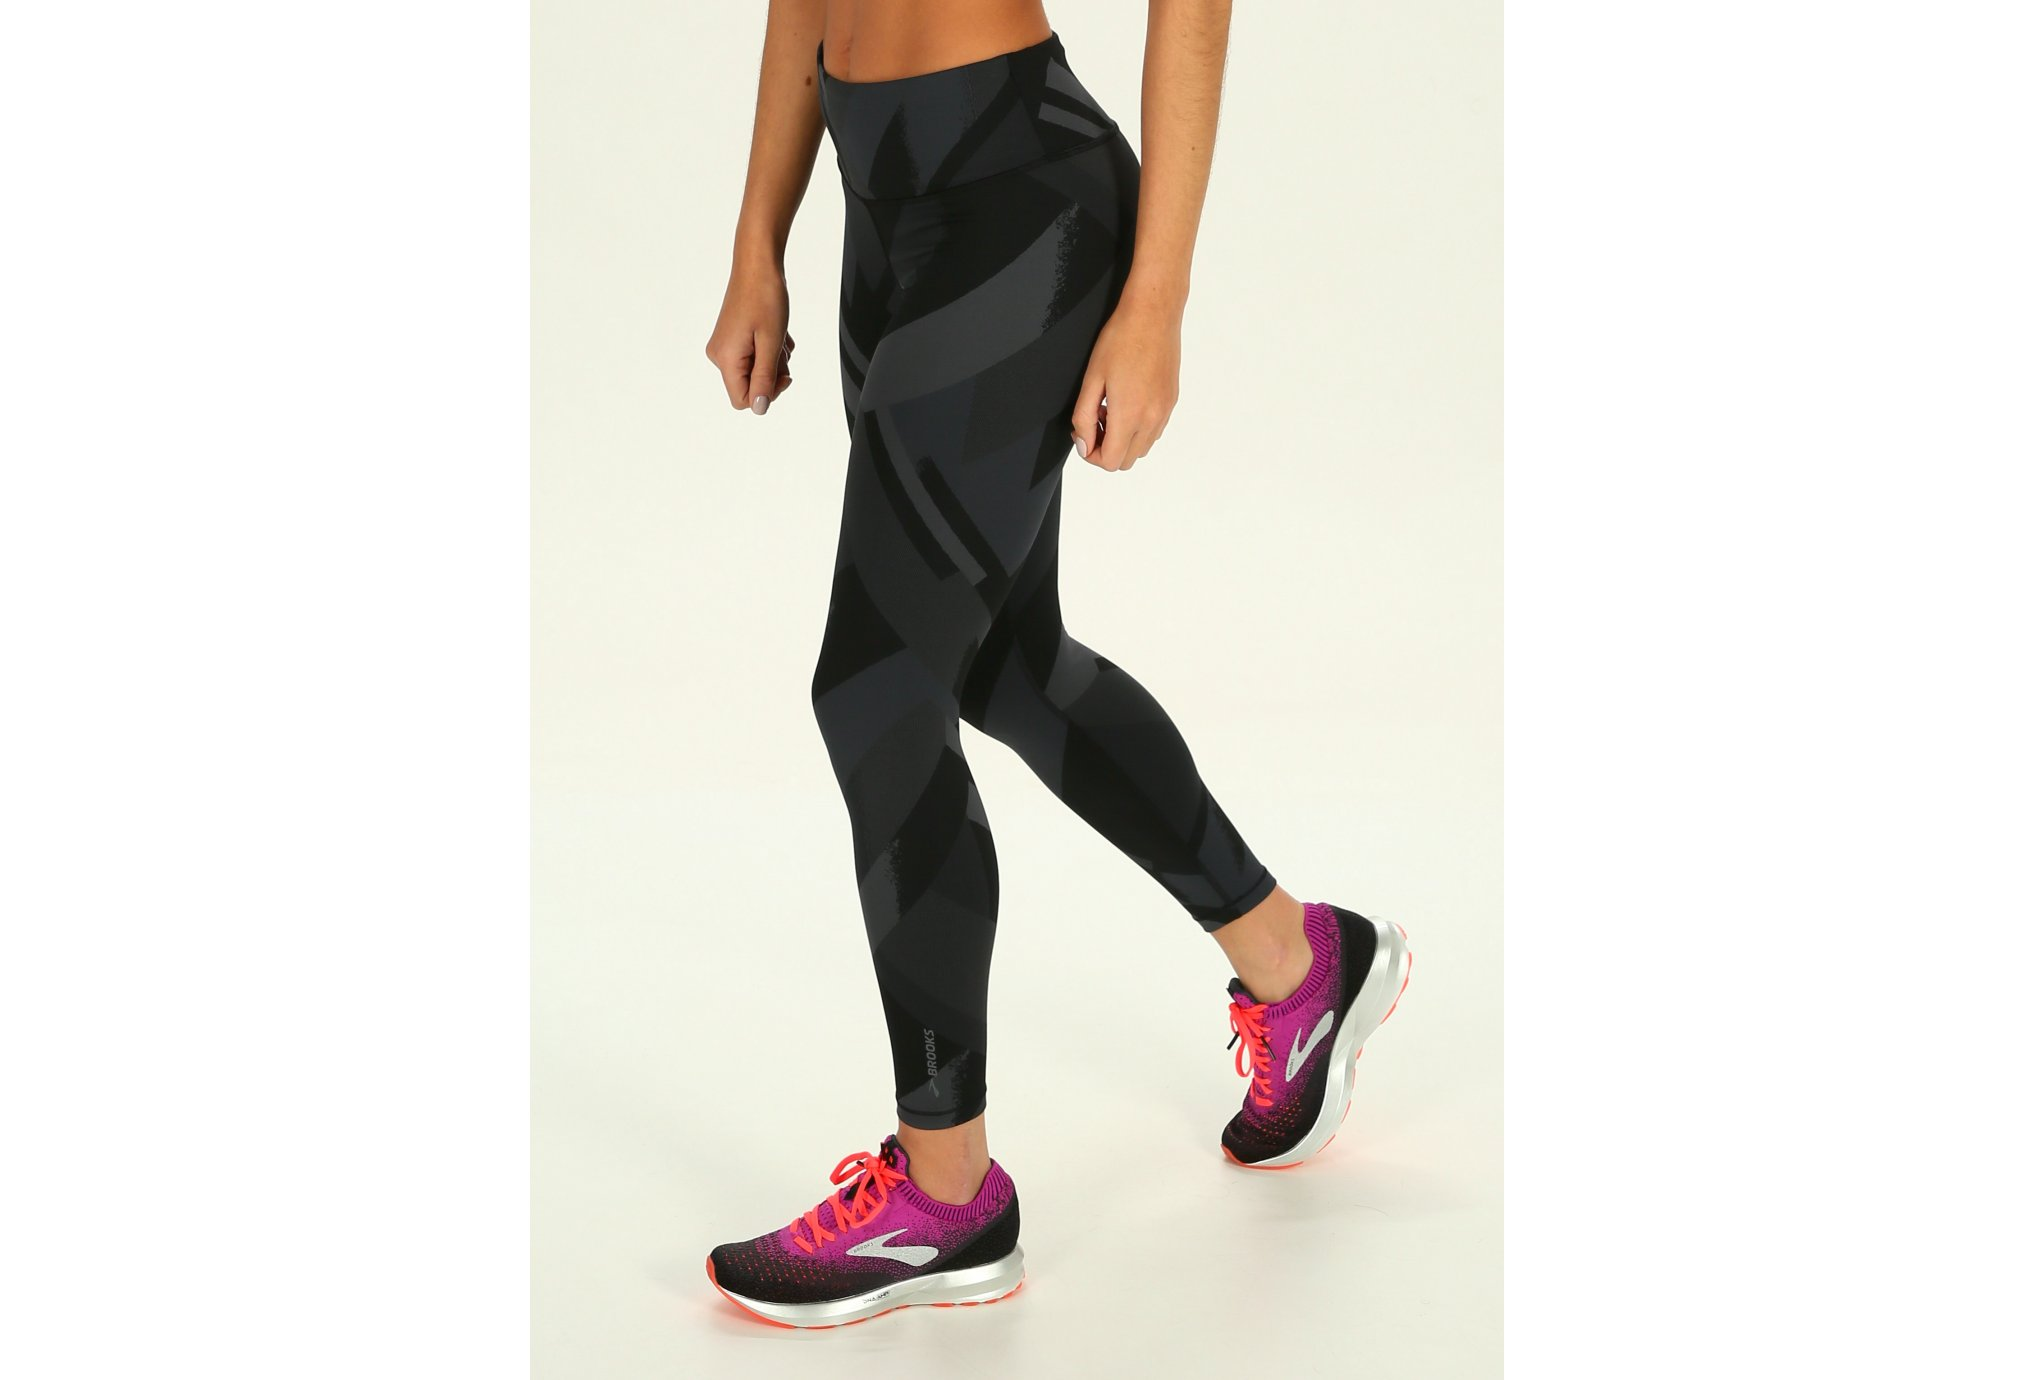 Brooks Mallas Formation Crop vêtement running femme